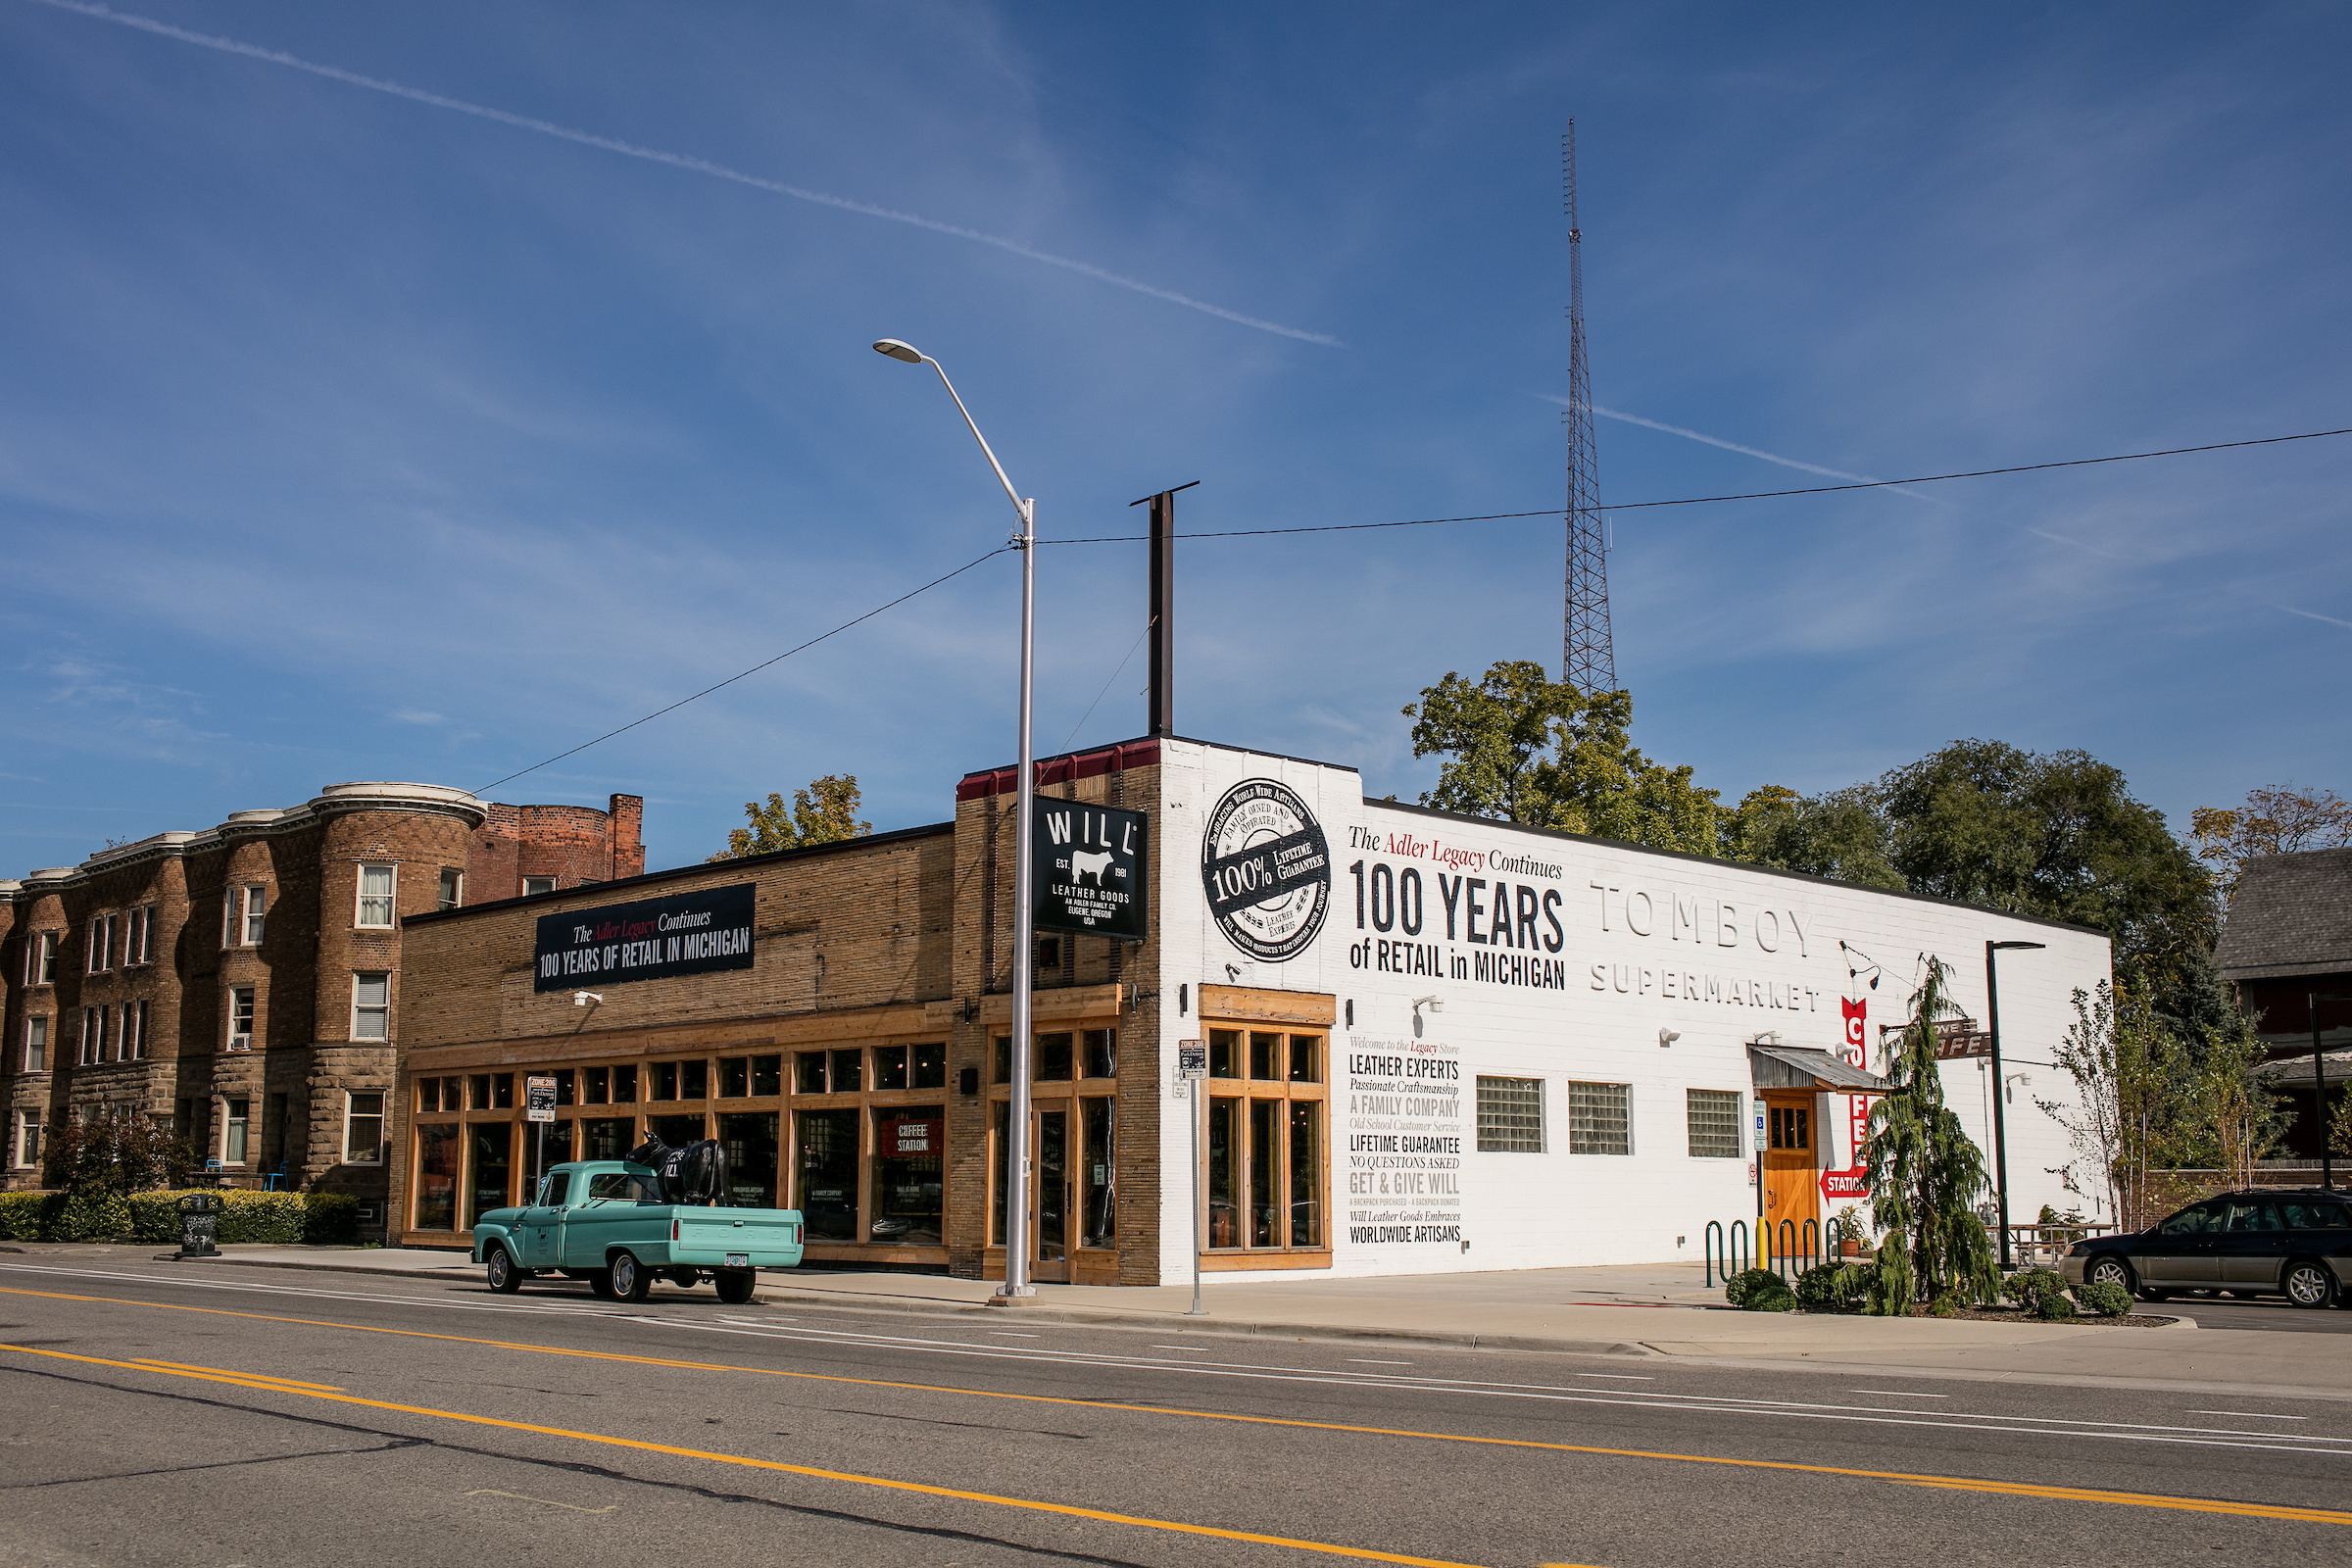 Will Leather Goods featured a tan brick facade with wood framed windows and a white painted wall facing the parking lot. A green vintage pickup truck is parked outside Will Leather Goods on a sunny day.